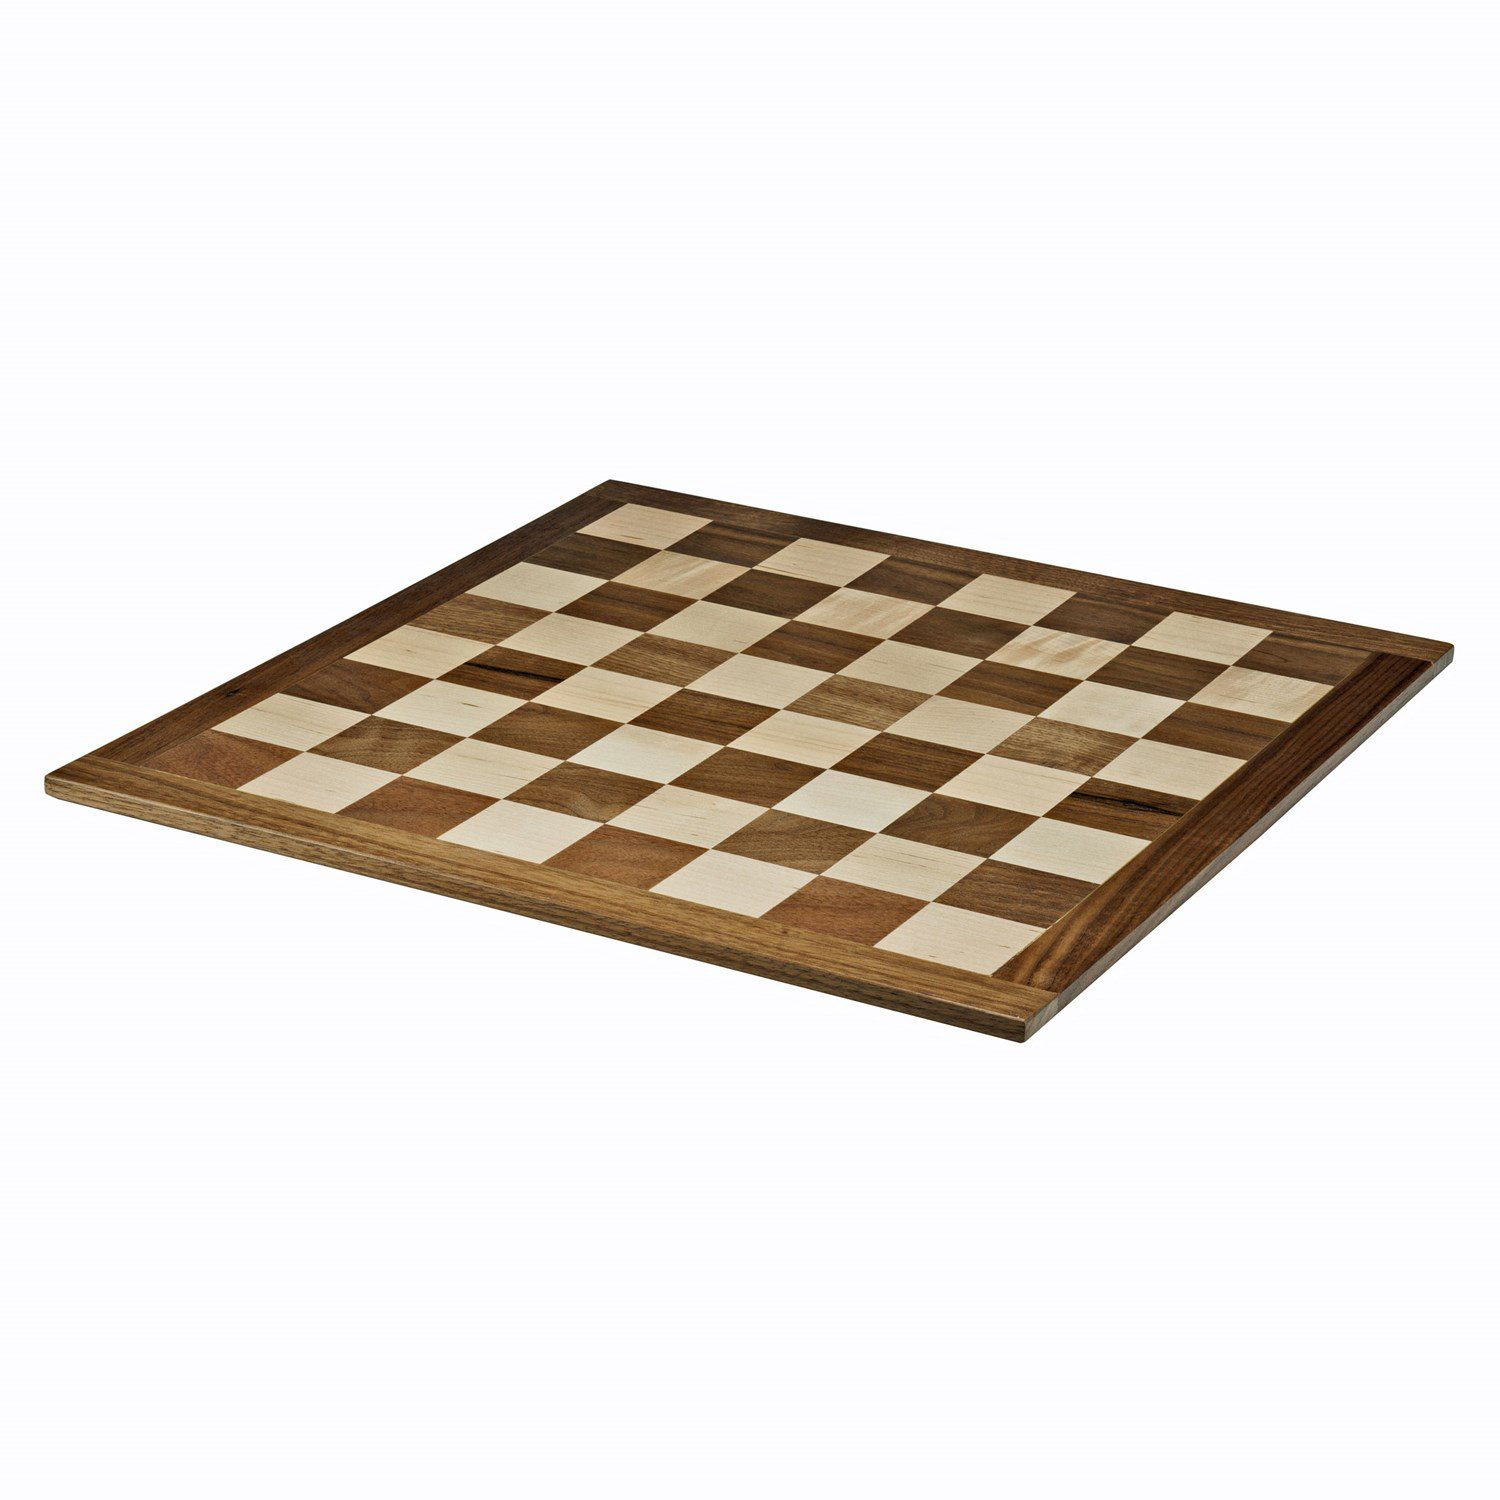 Classic Chess Board Solid Walnut Amp Maple Wood 18 In